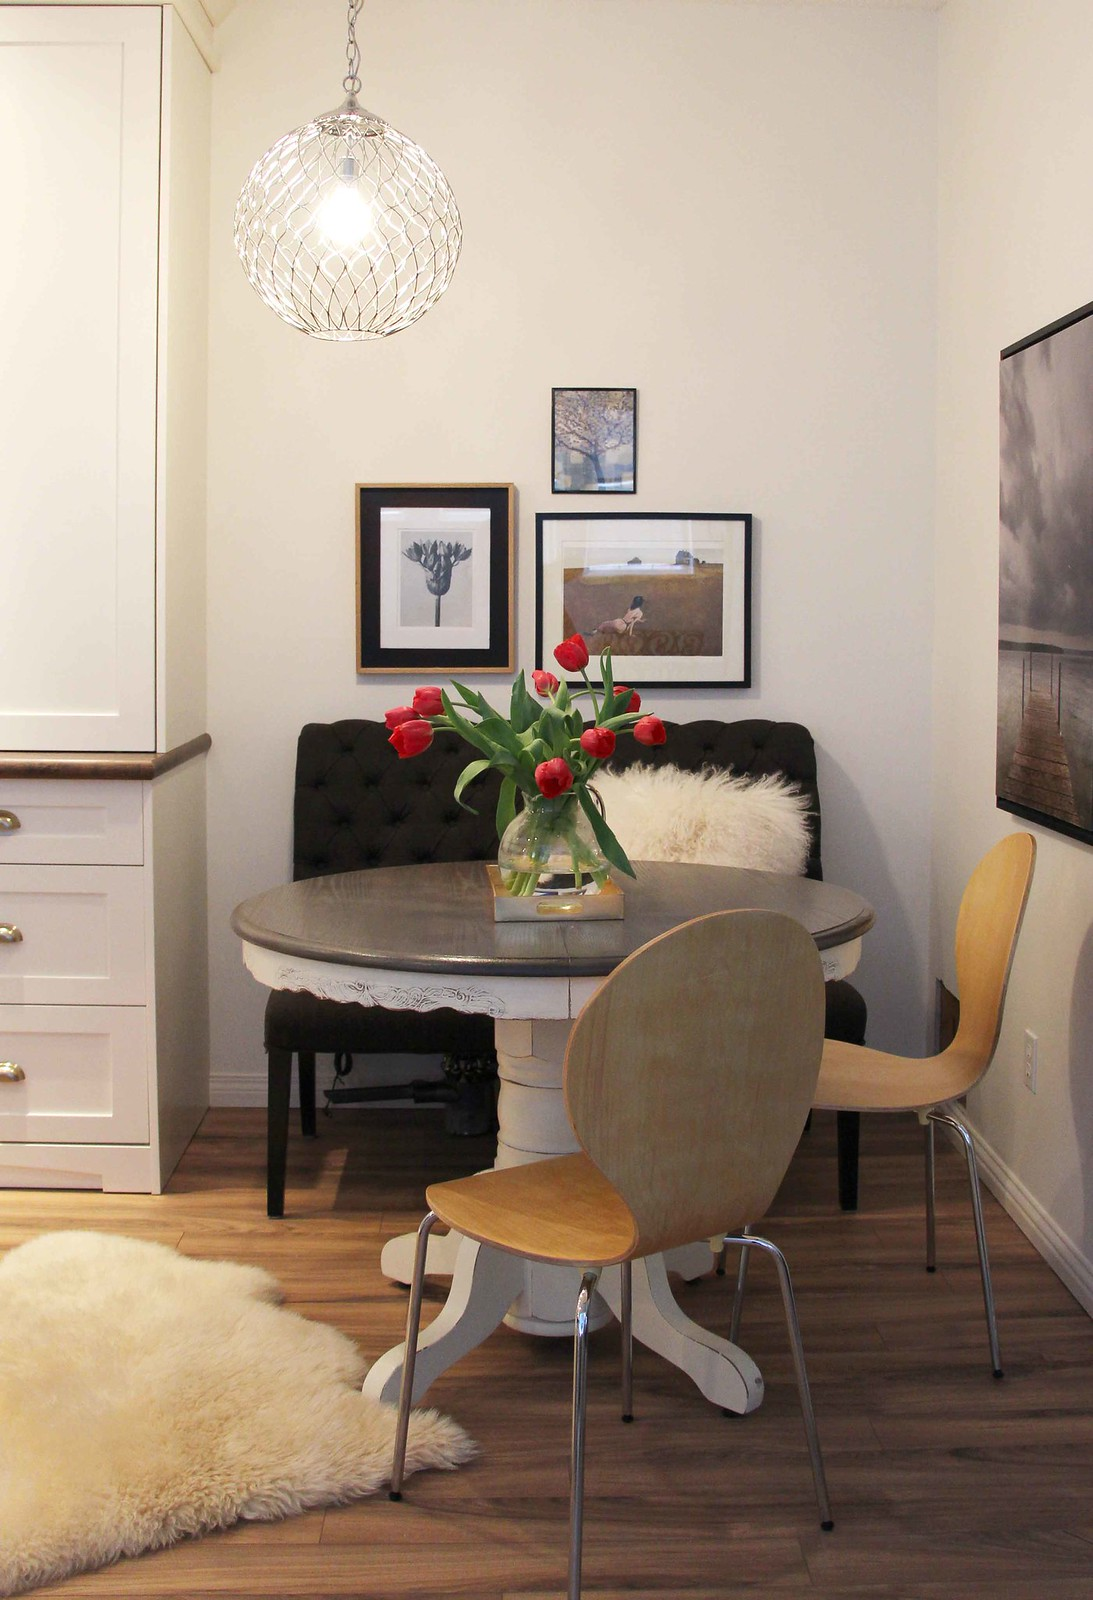 benjamin moore ballet white on walls in this kitchen nook with antique round table and modern chairs